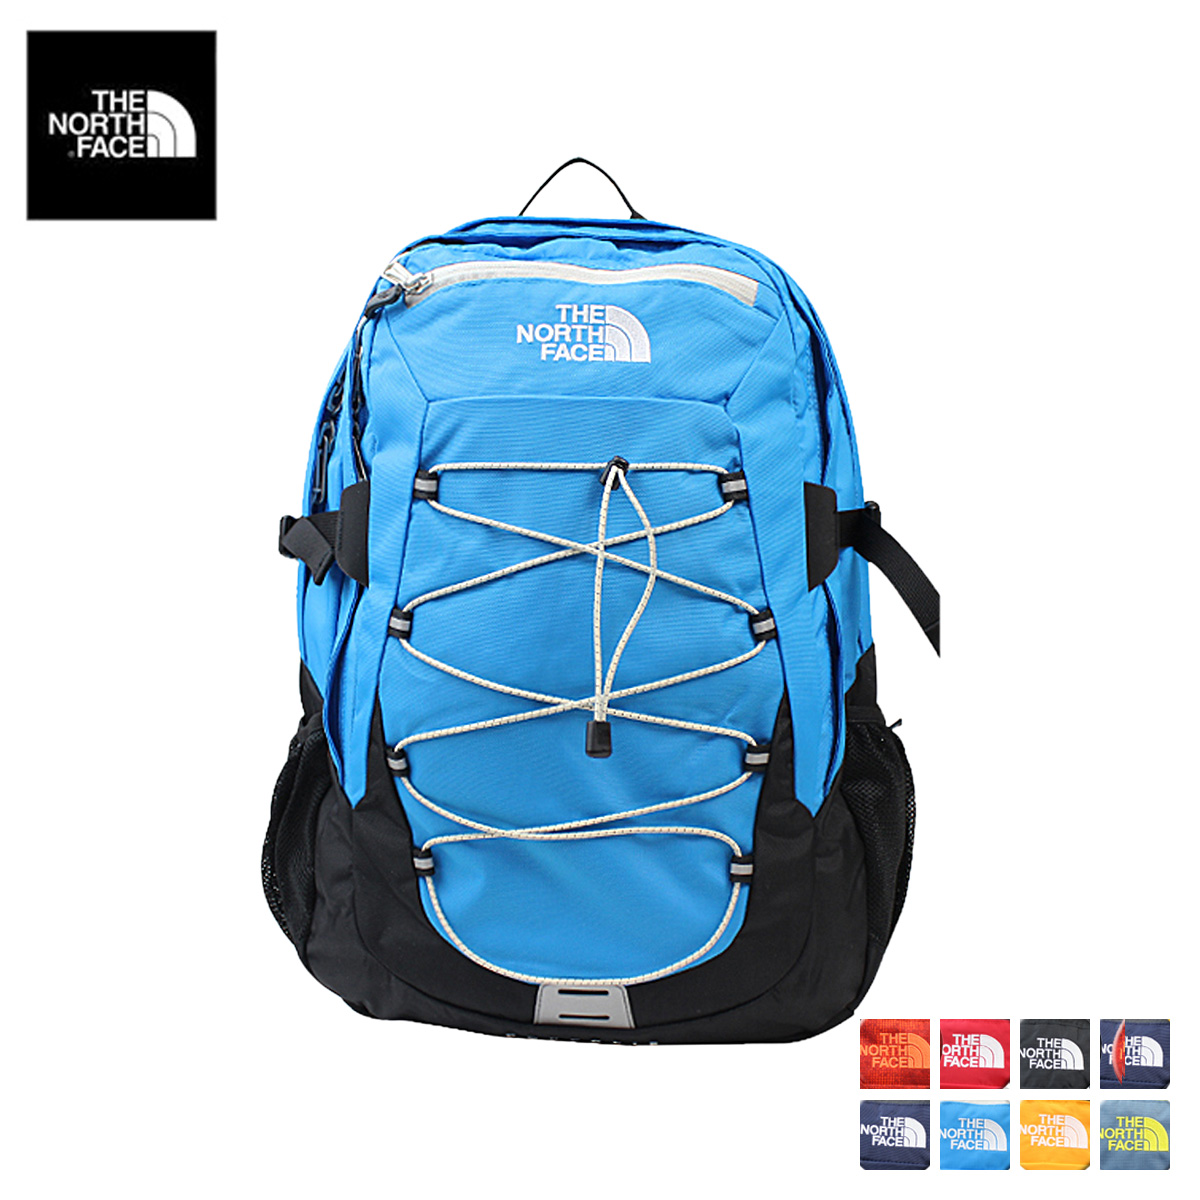 e44f731d5 North Face THE NORTH FACE rucksack backpack day pack 7 color CE82 29L  BOREALIS BACKPACK men gap Dis